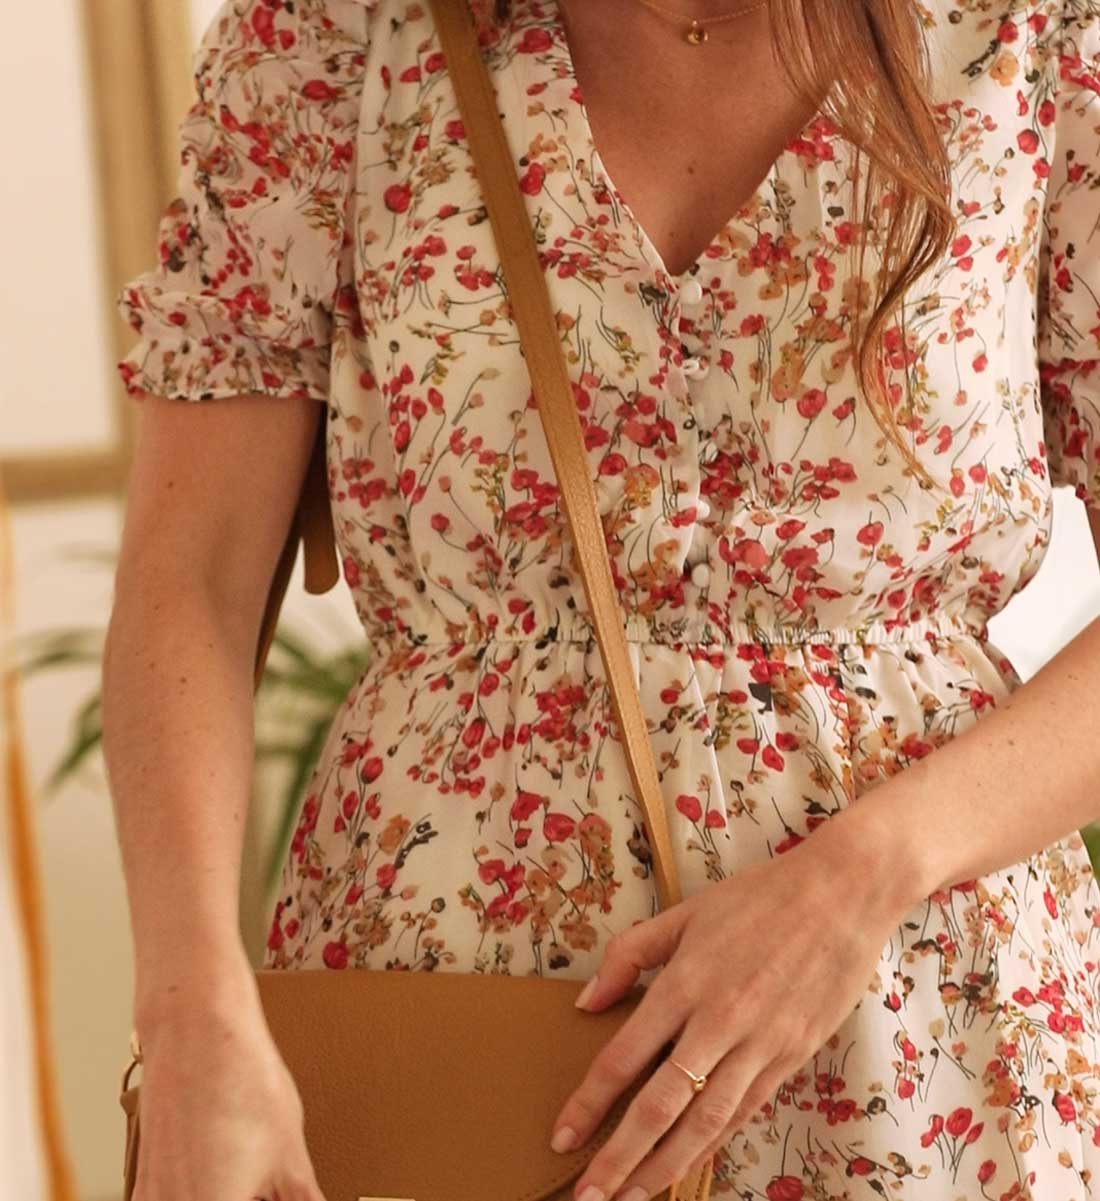 4 Floral Dresses for 4 Amazing Summer Looks